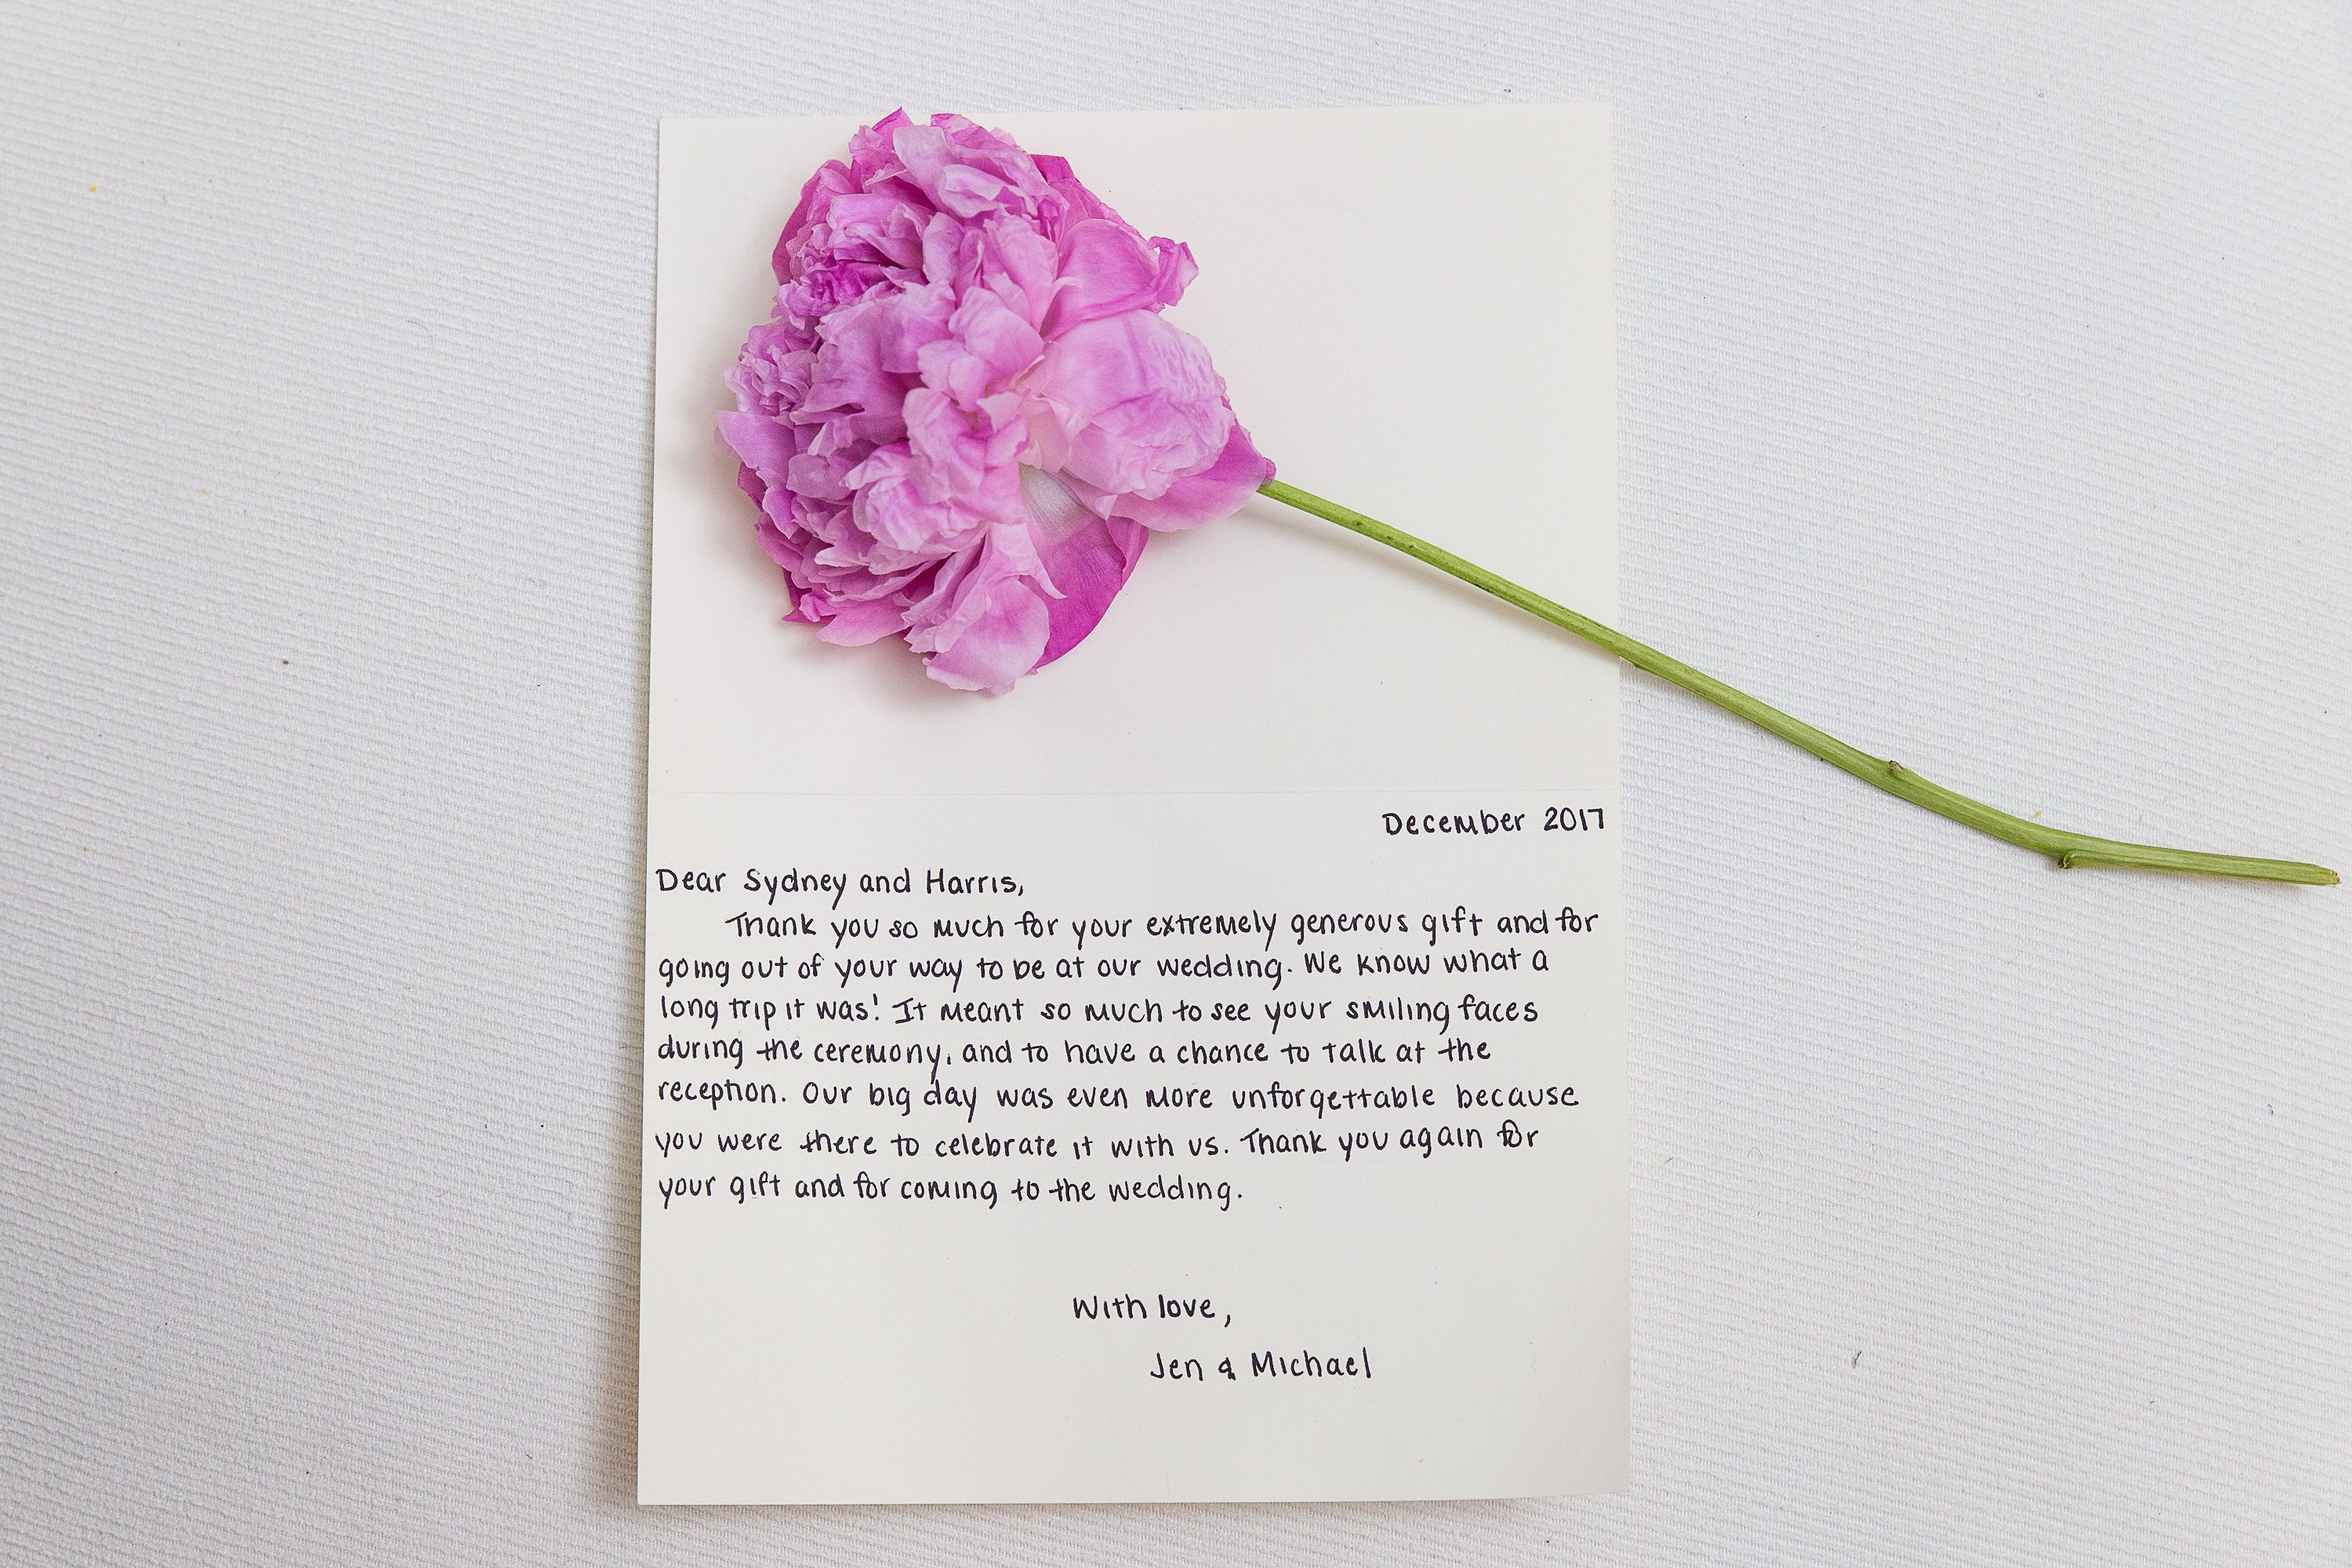 Personalized Handwritten Wedding Thank You Notes by